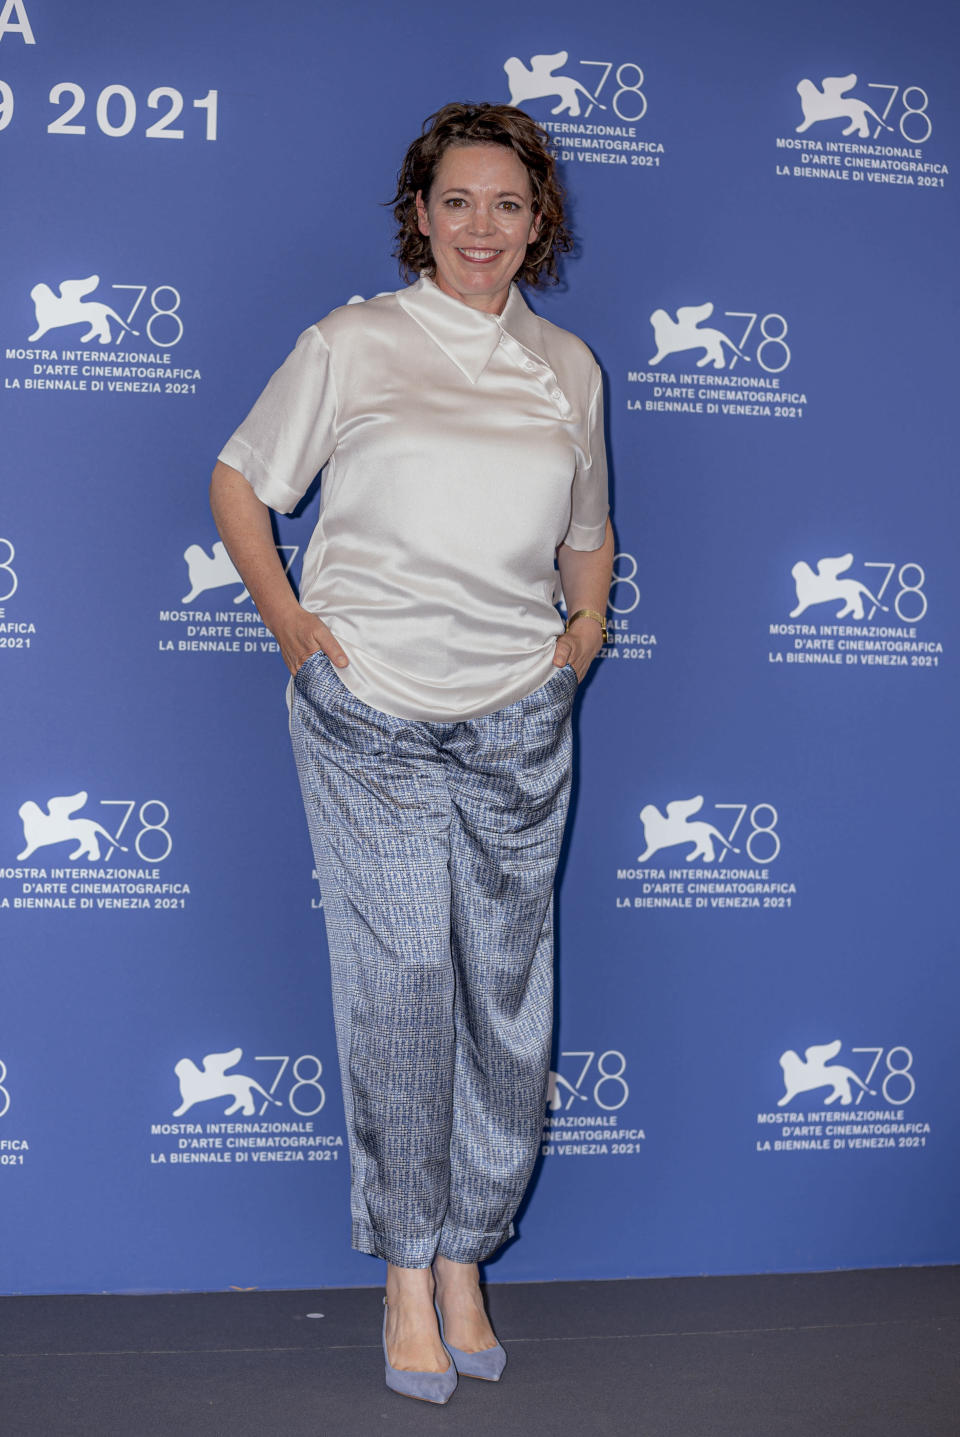 Olivia Colman poses for photographers at the photo call for the film 'XThe Lost Daughter' during the 78th edition of the Venice Film Festival in Venice, Italy, Friday, Sep, 3, 2021. (AP Photo/Domenico Stinellis)